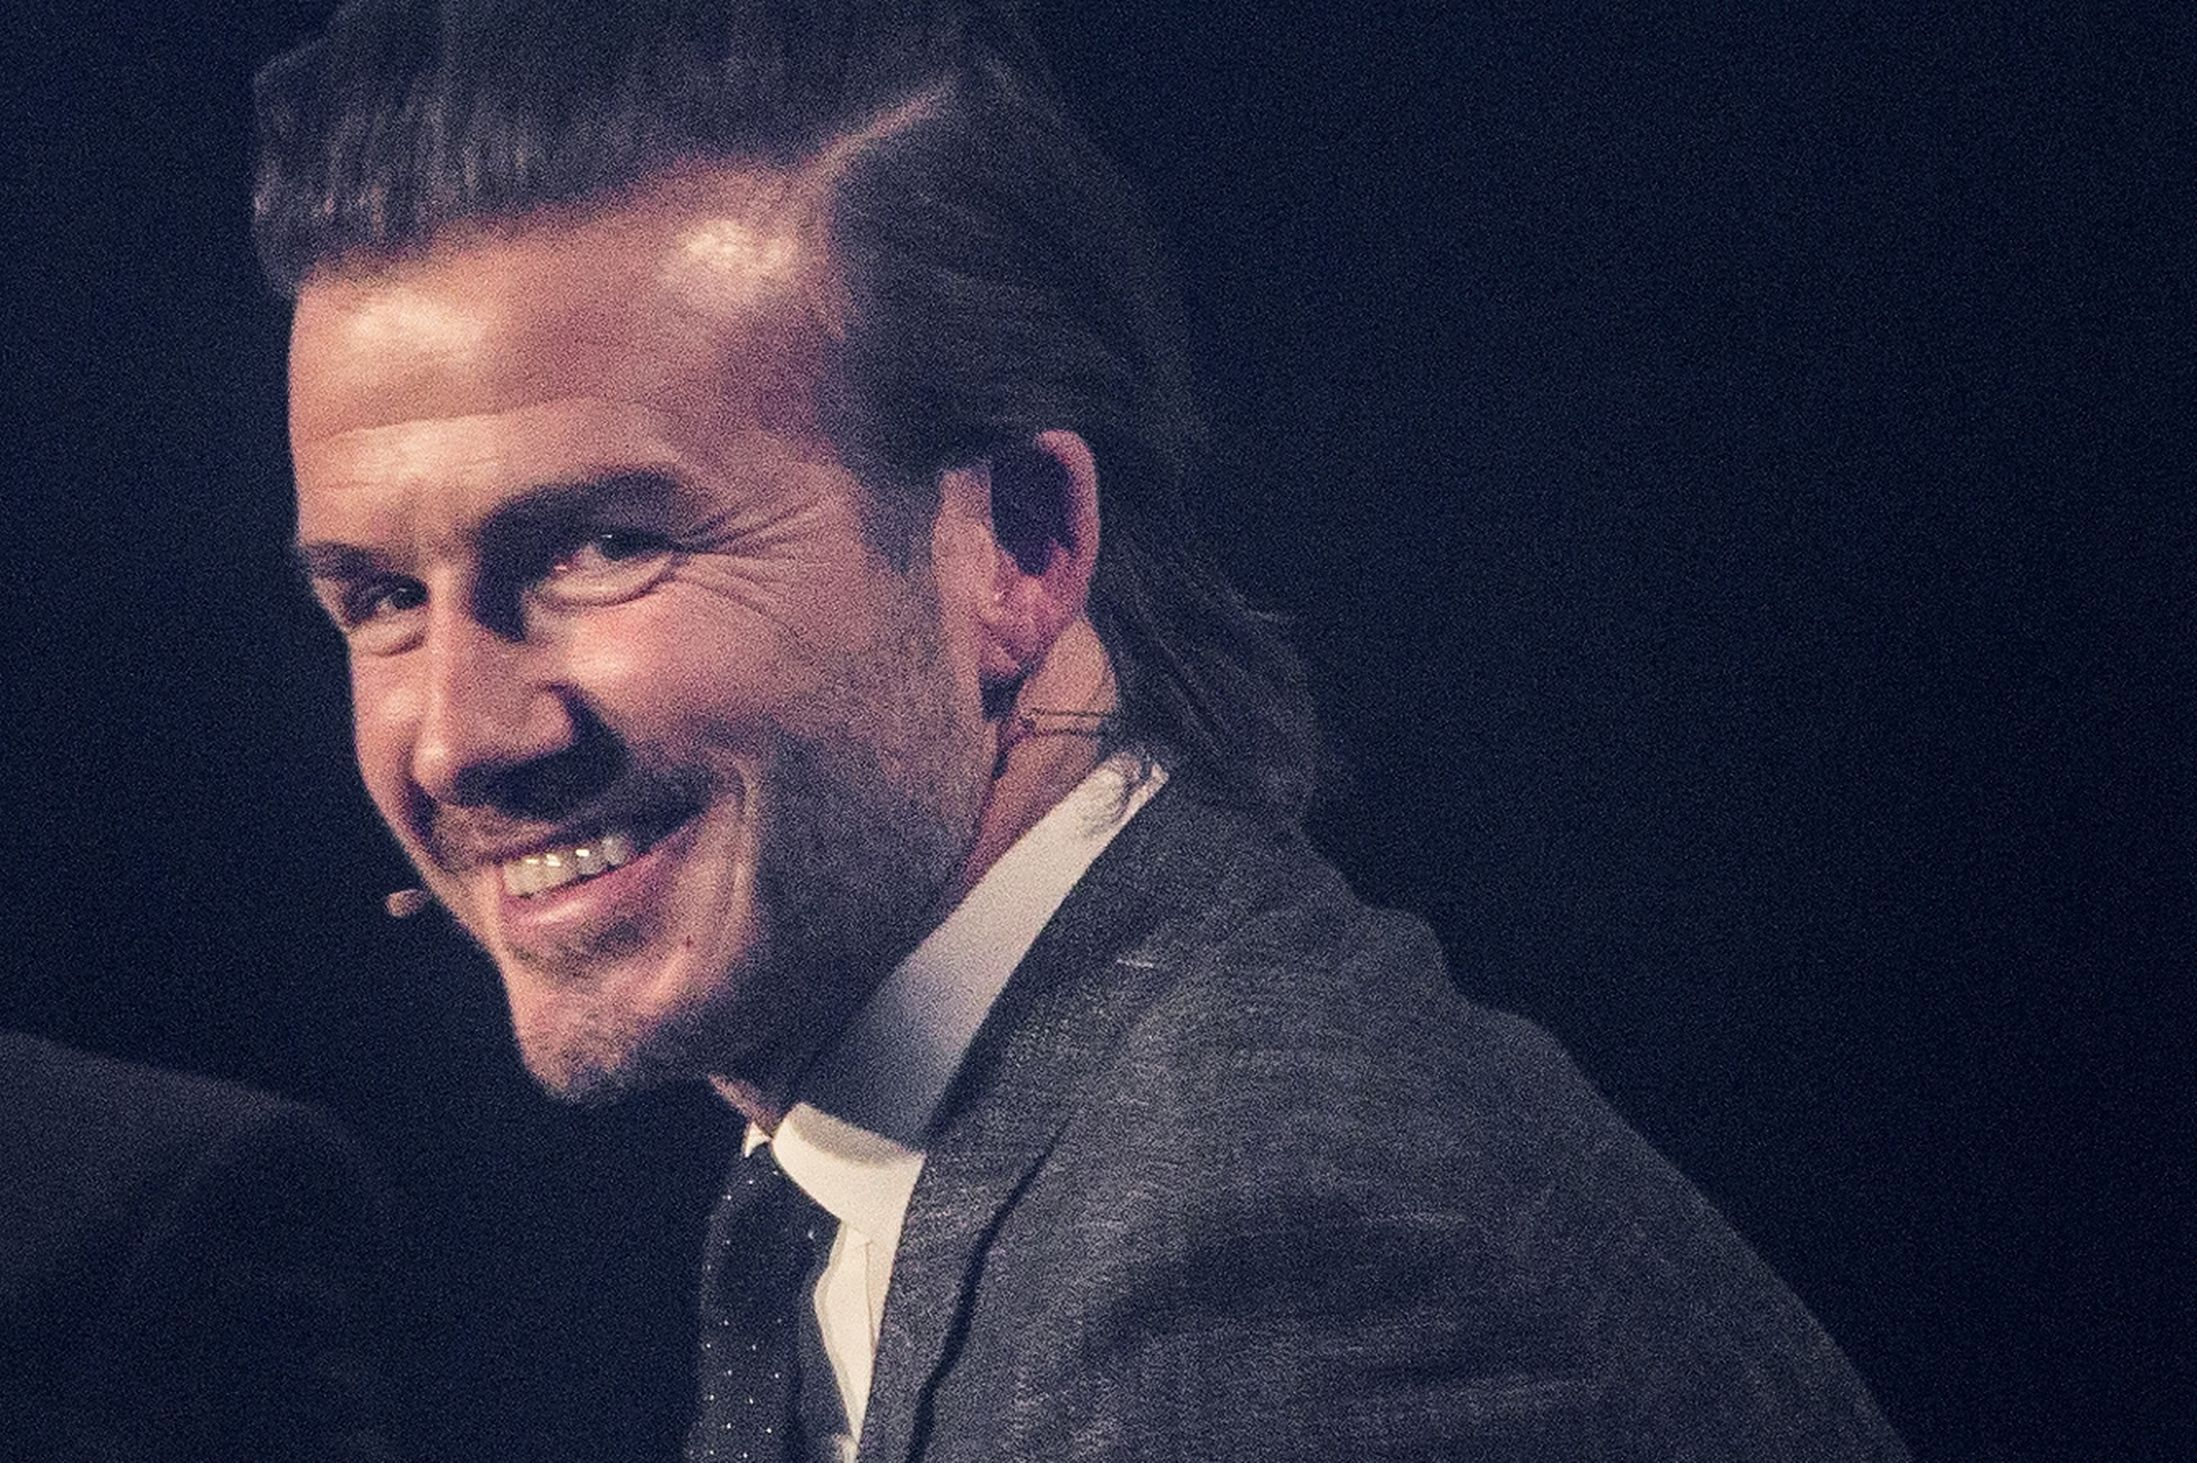 Manchester United star David Beckham 'pines for Manchester', telling riveted audience he 'will always miss it' #spotonentertain